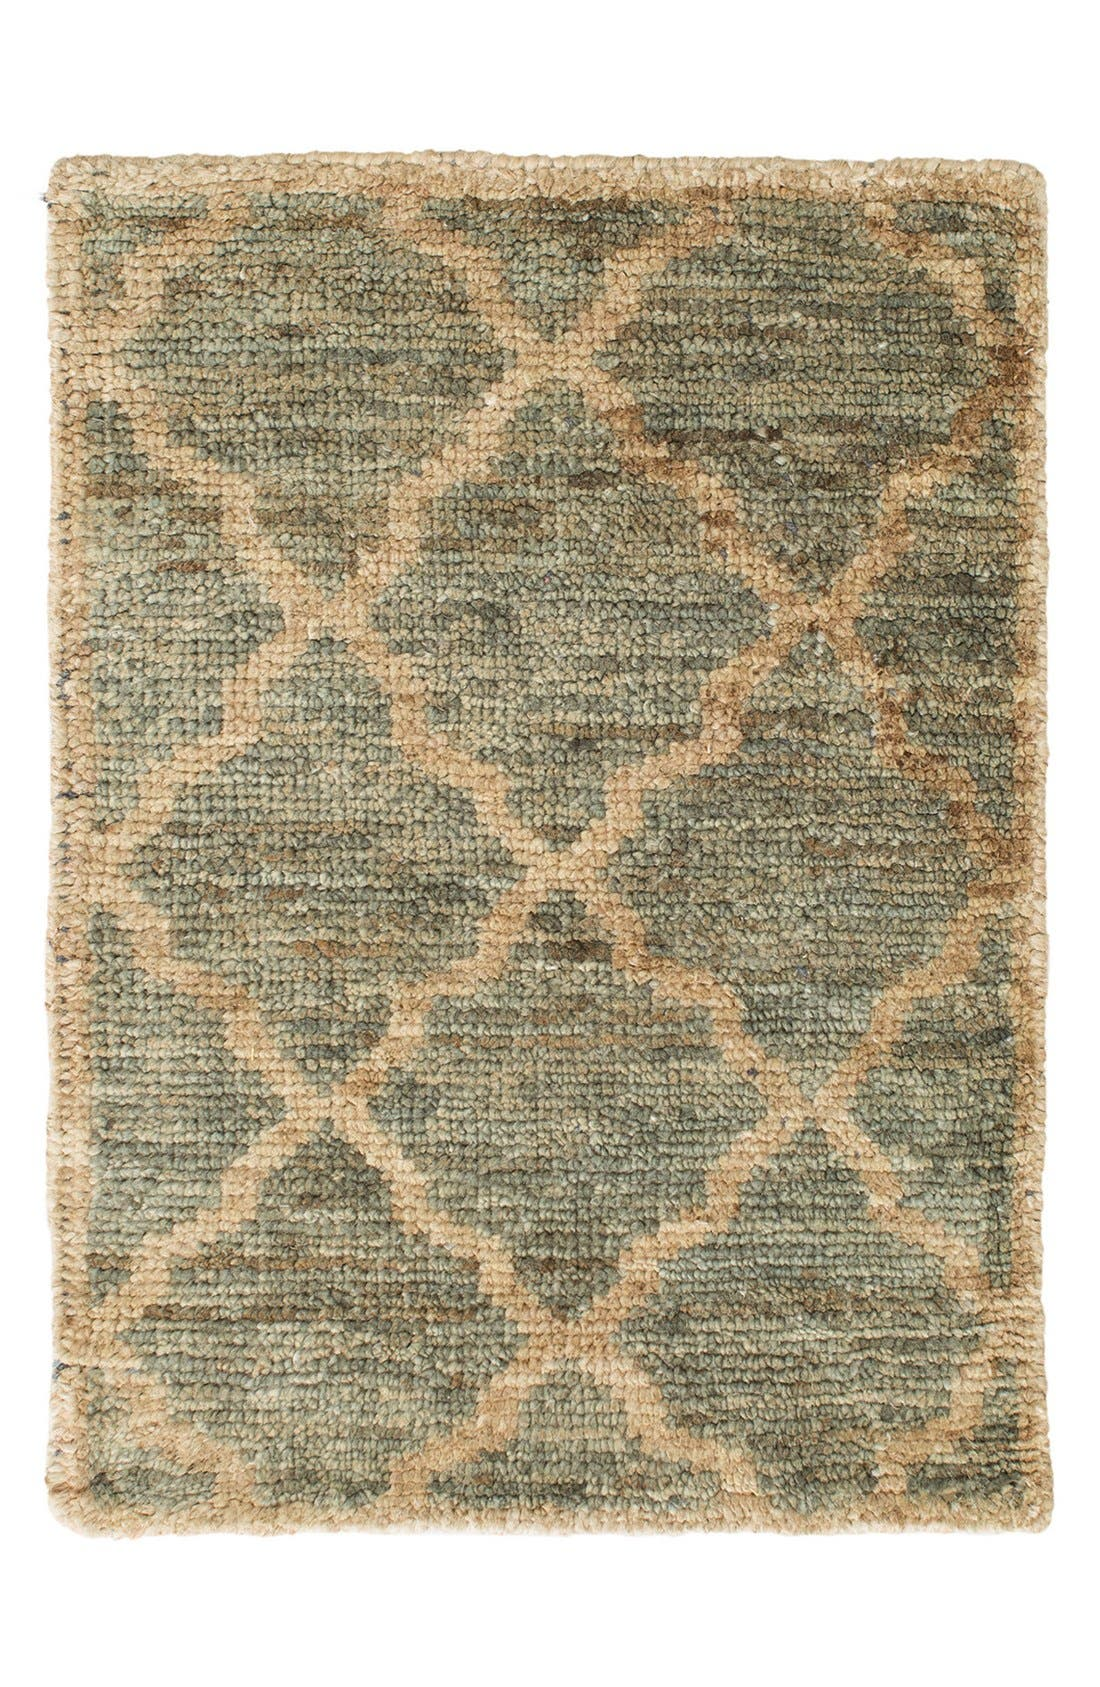 Casablanca Hand Knotted Rug,                             Main thumbnail 1, color,                             300